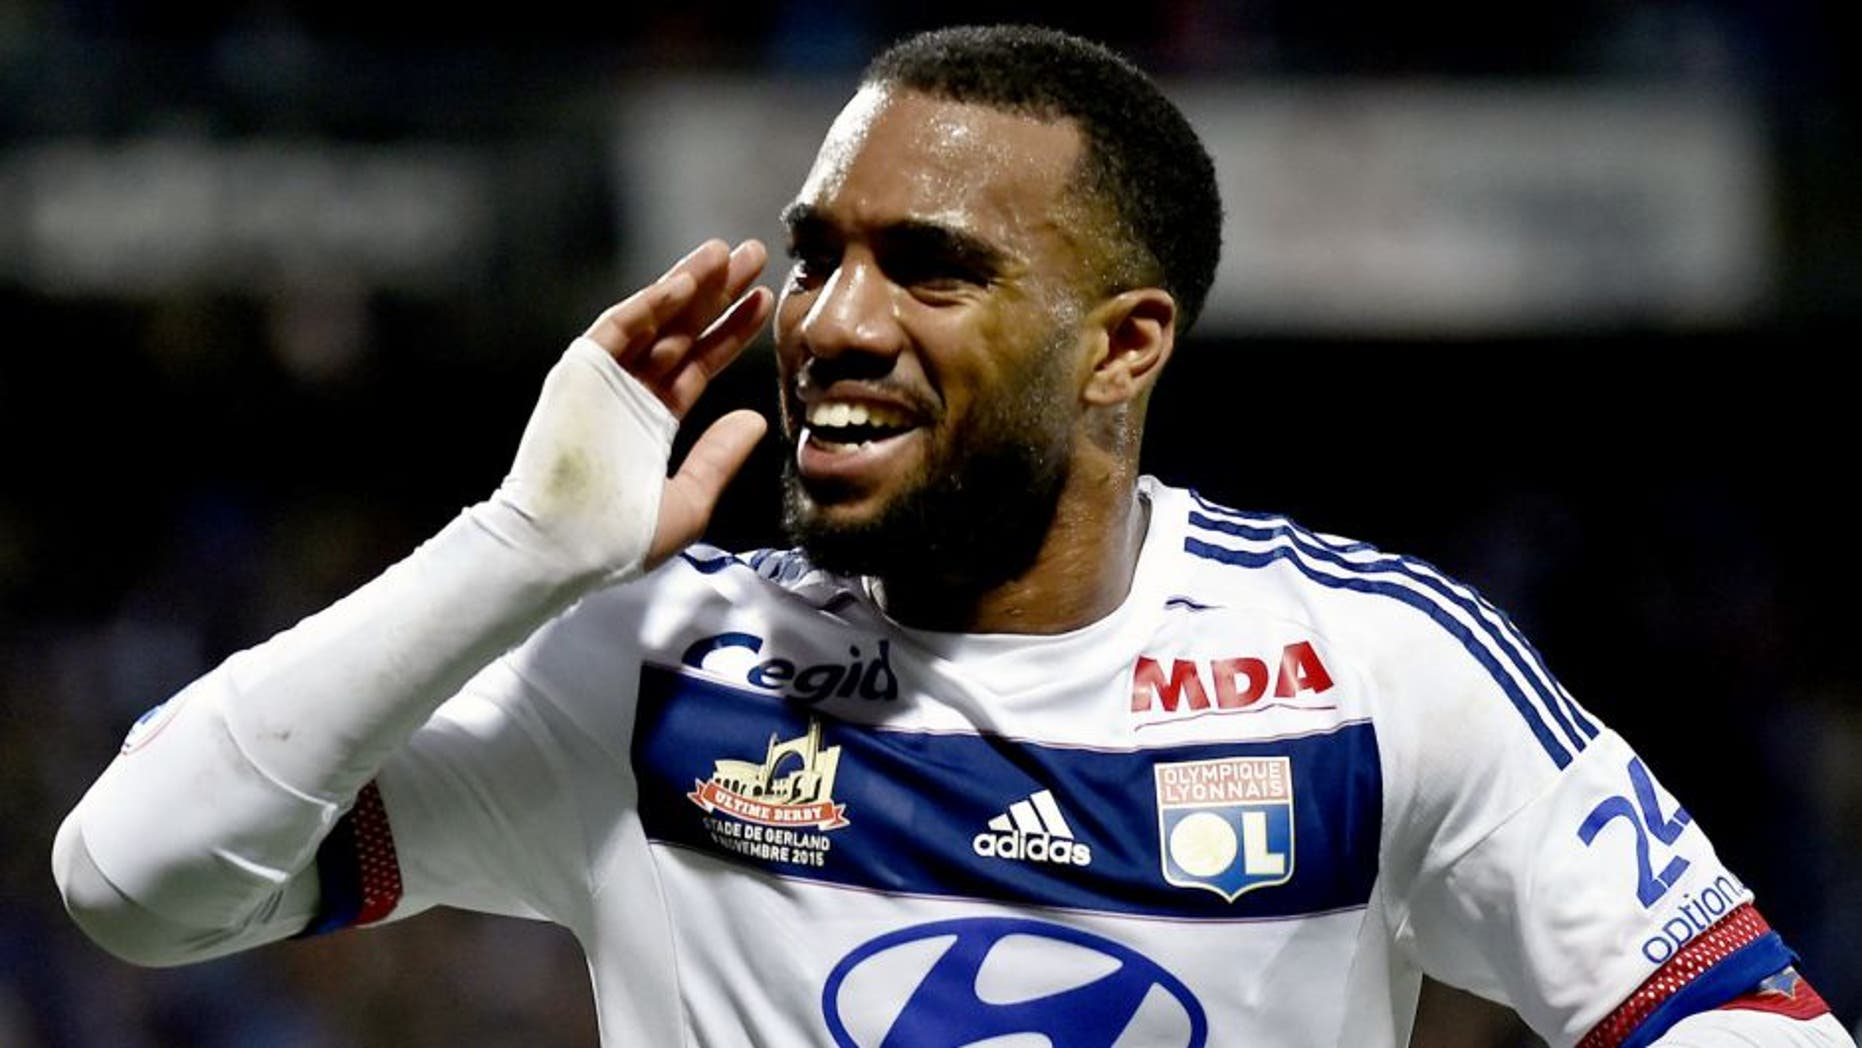 Lyon's French forward Alexandre Lacazette celebrates after scoring a goal during the French L1 football match between Lyon and Saint-Etienne at the Gerland stadium in Lyon, southeastern France, on November 8, 2015. AFP PHOTO / JEFF PACHOUD (Photo credit should read JEFF PACHOUD/AFP/Getty Images)